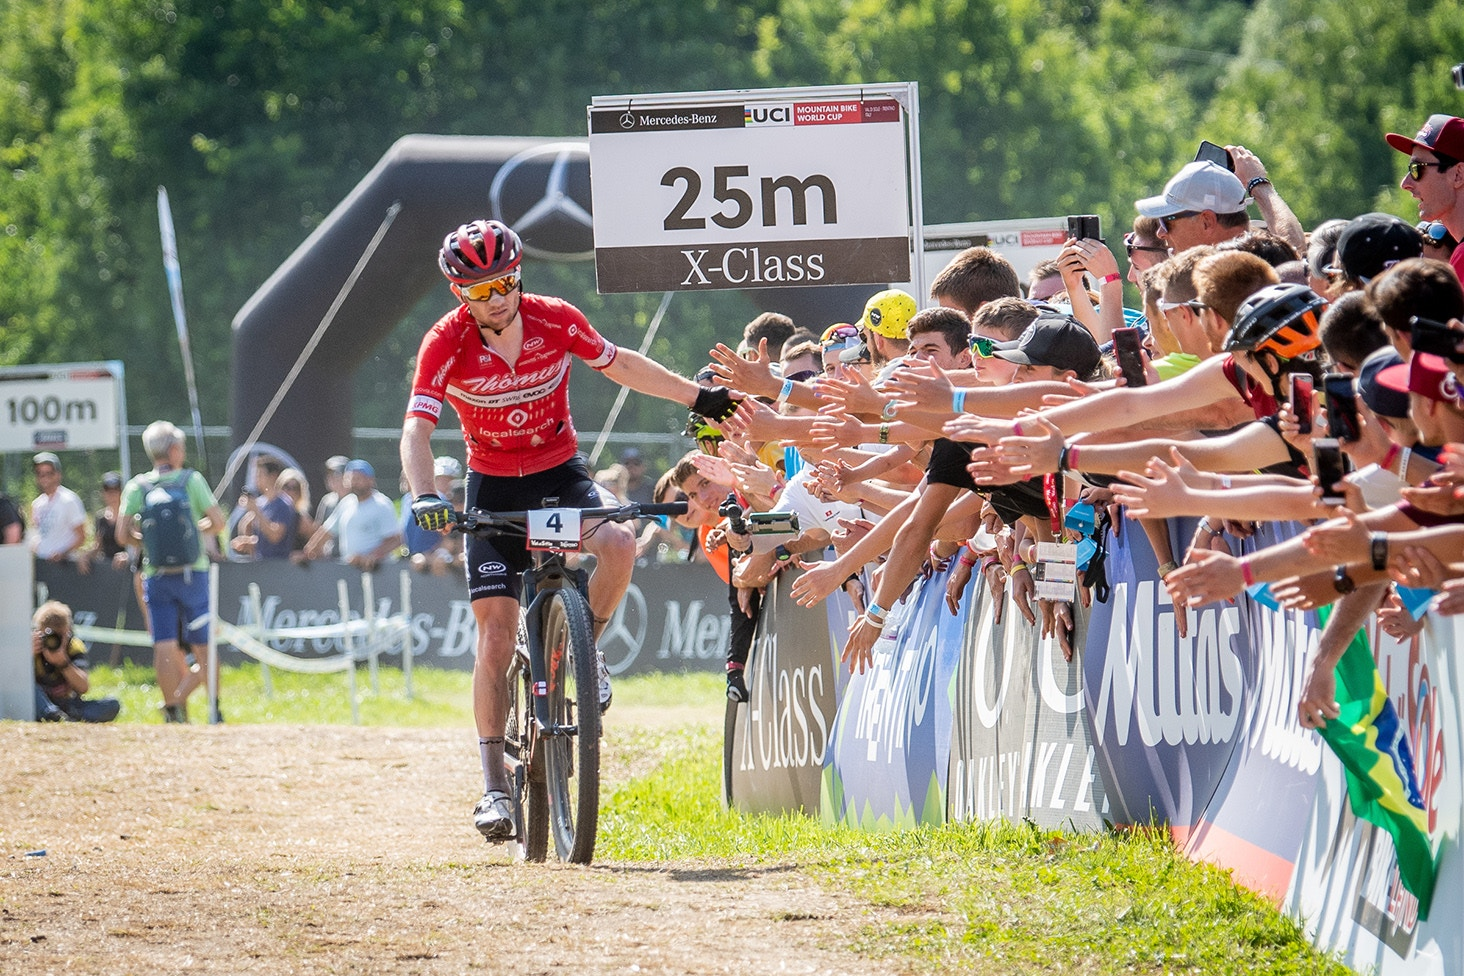 VAL DI SOLE: NORTHWAVE WINS WITH FLÜCKIGER